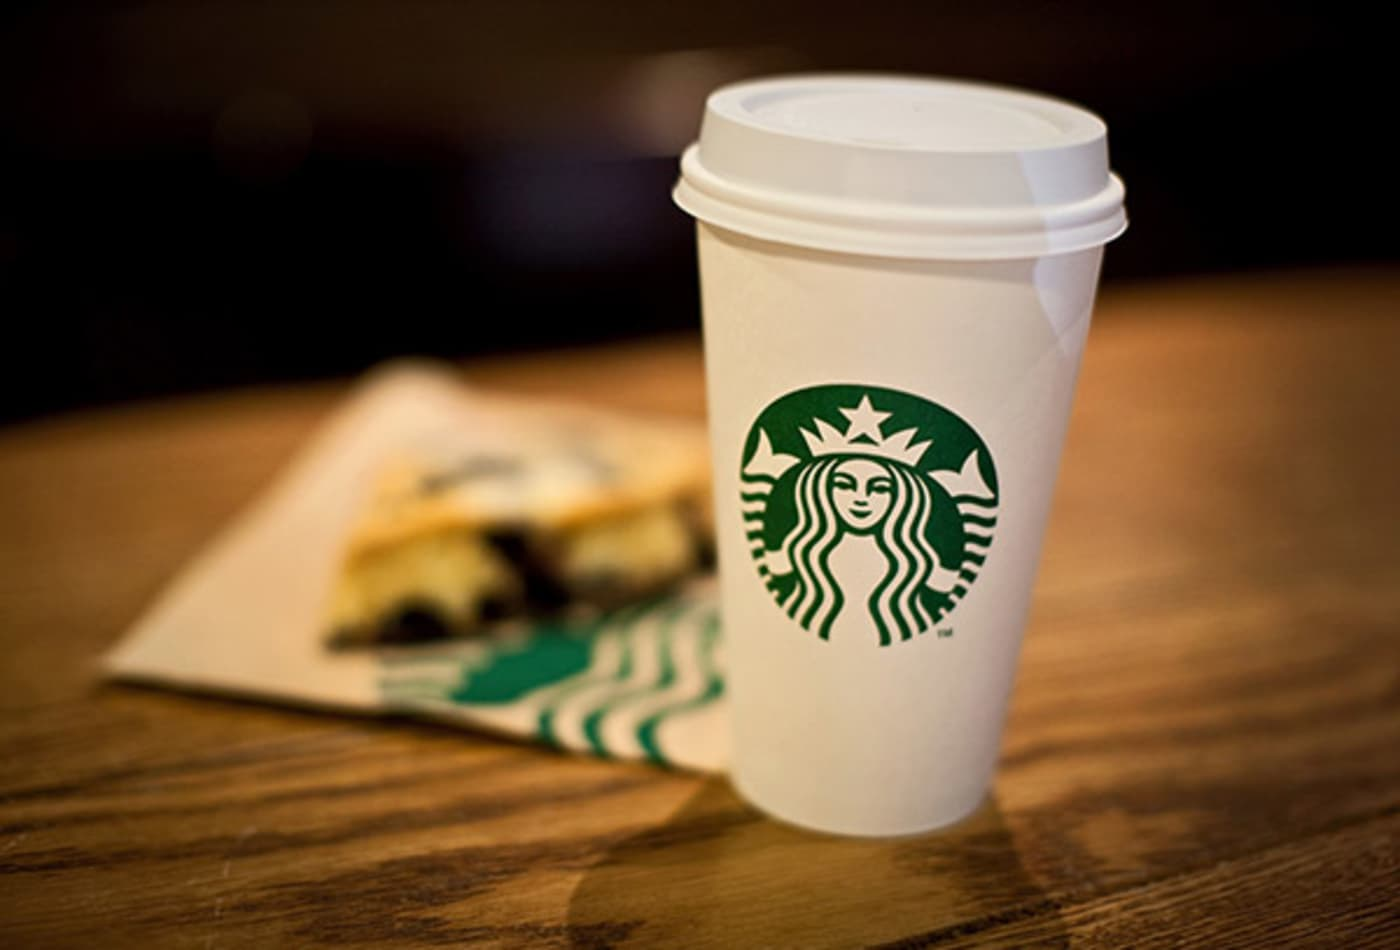 cramers-growth-portfolio-starbucks.jpg